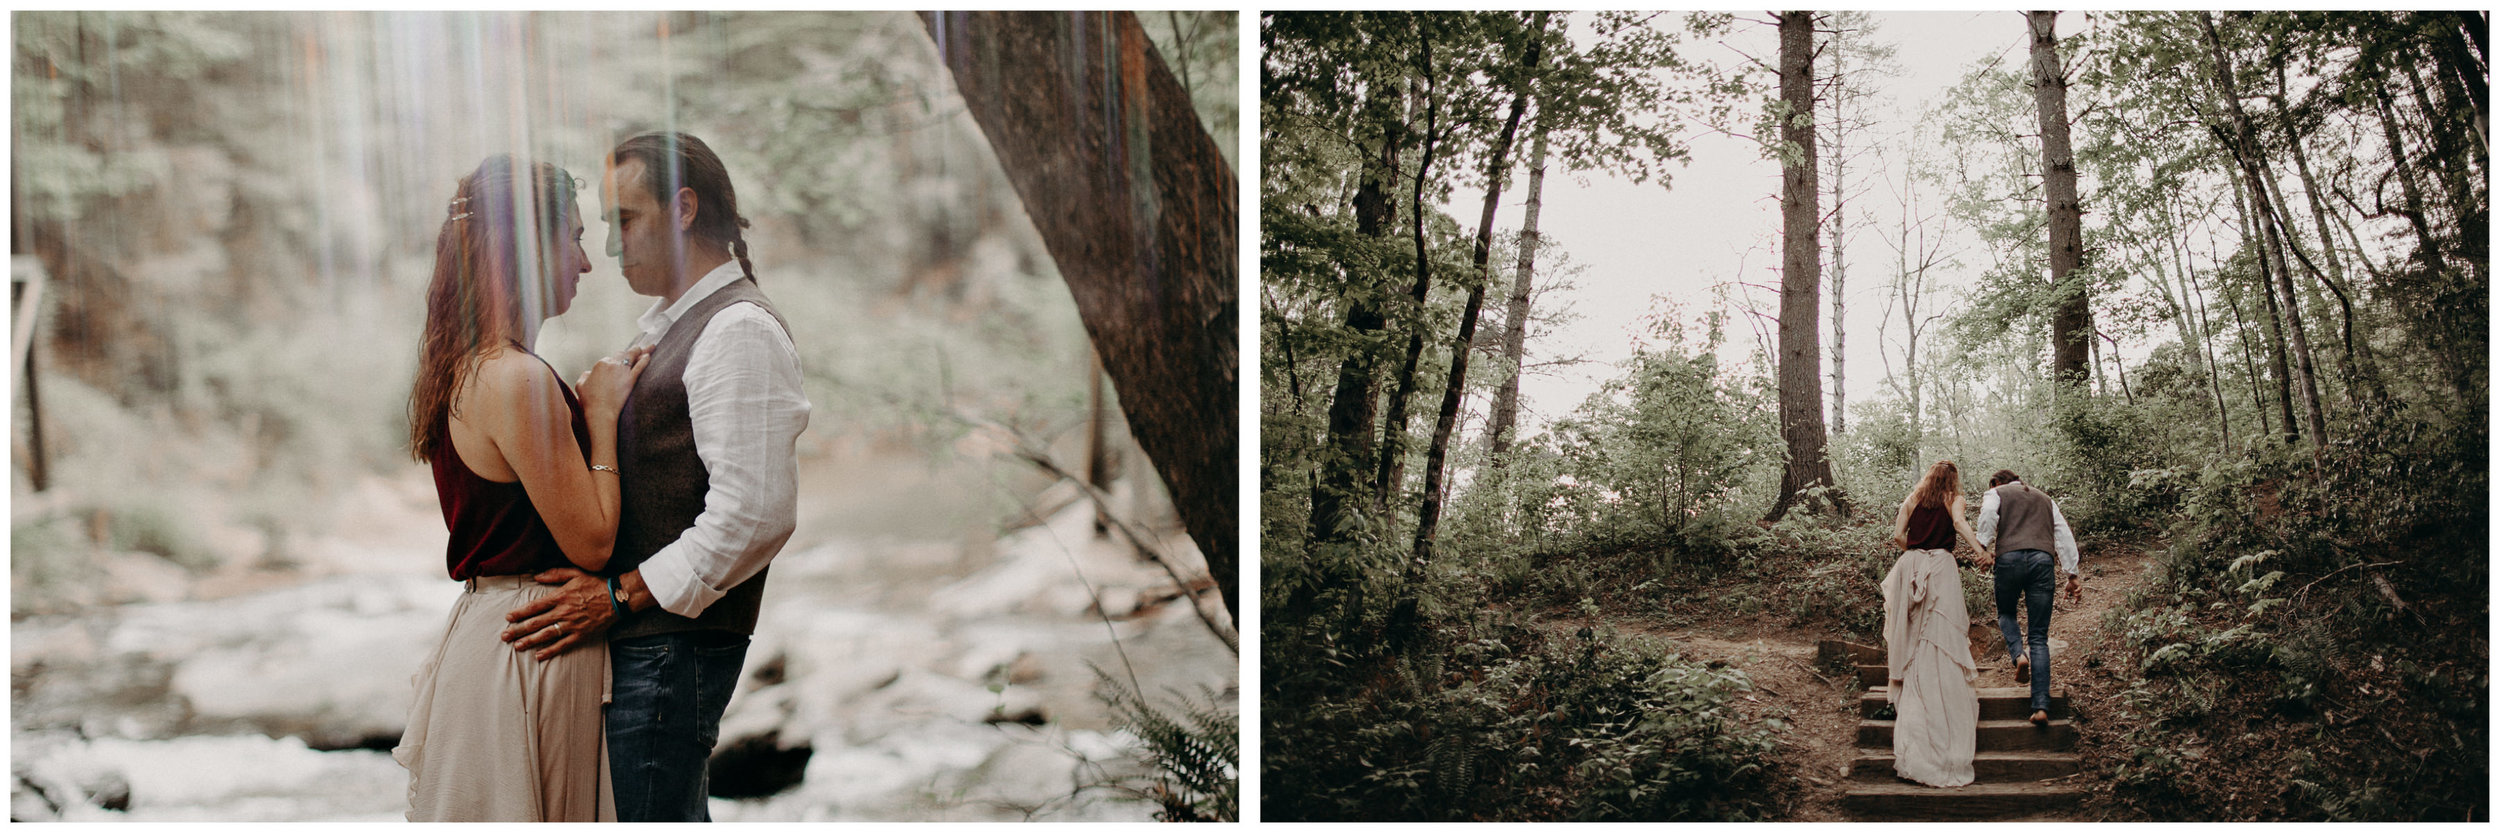 88- Forest wedding boho enchanched fairytale wedding atlanta - ga , intimate, elopement, nature, greens, good vibes. Aline Marin Photography .jpg